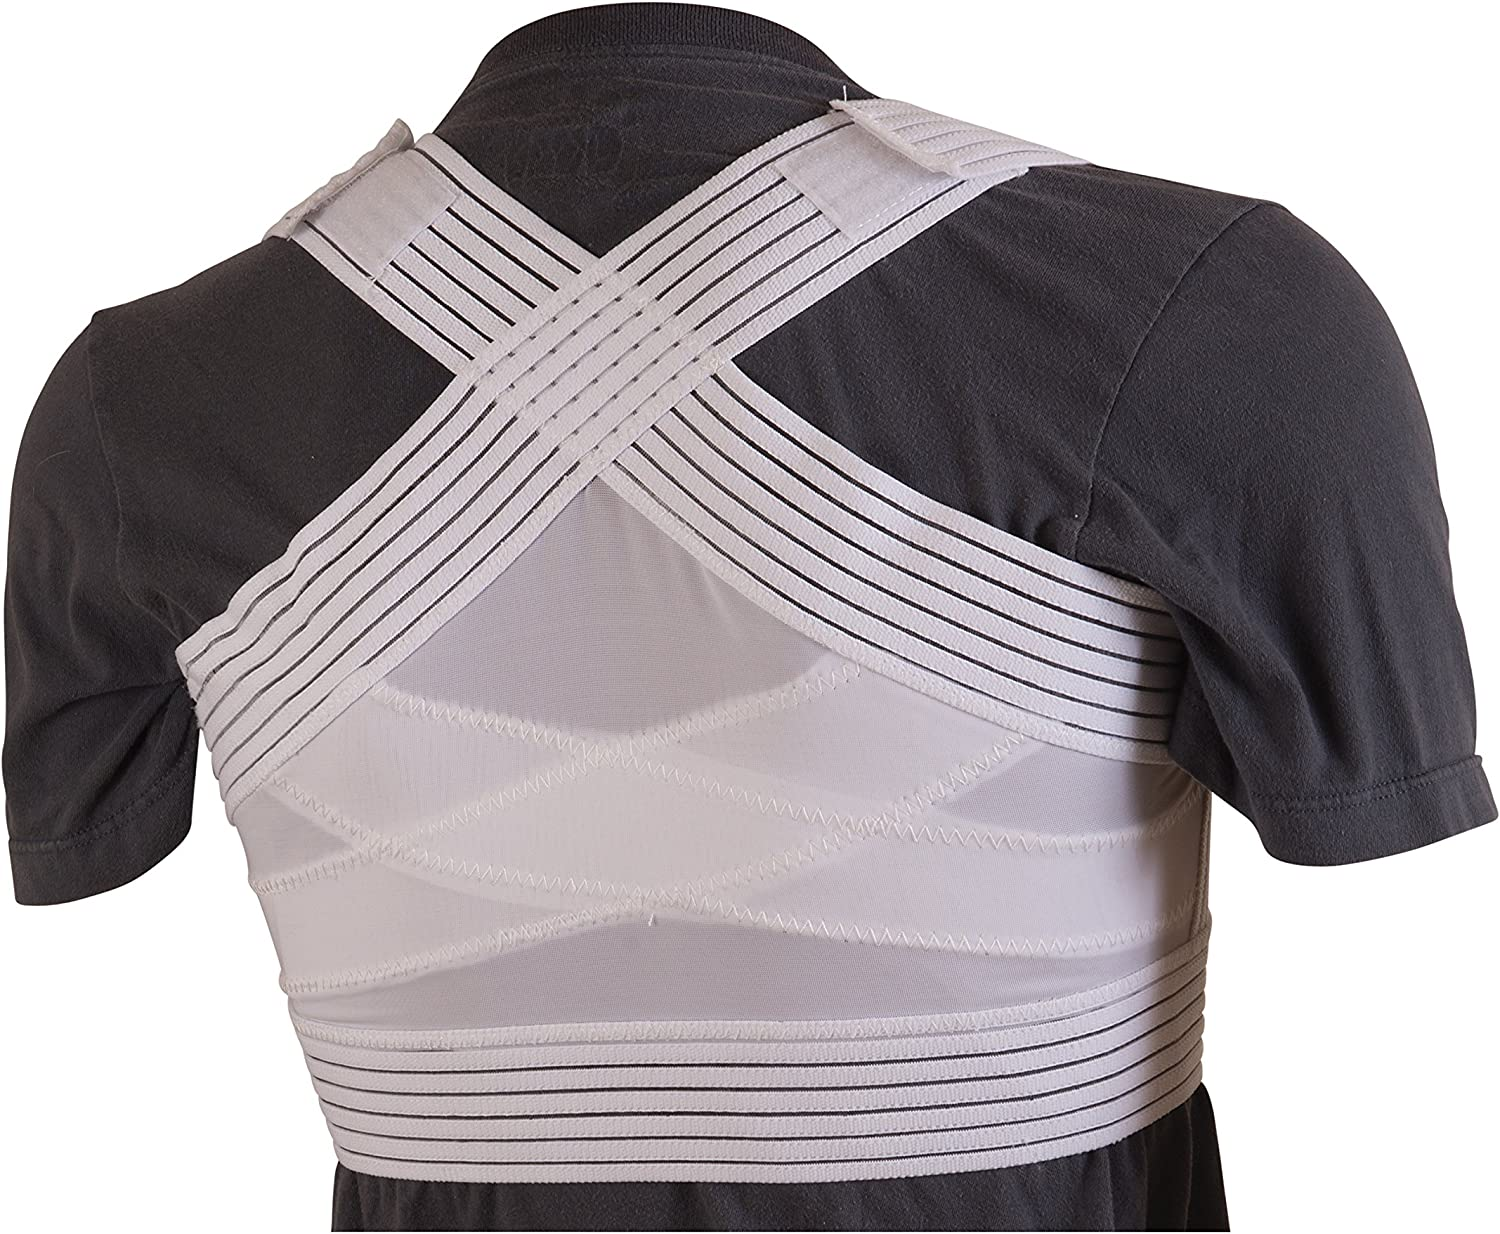 DMI Posture Corrector famous Unisex White Criss-Cross Ex Bands Foam Year-end annual account